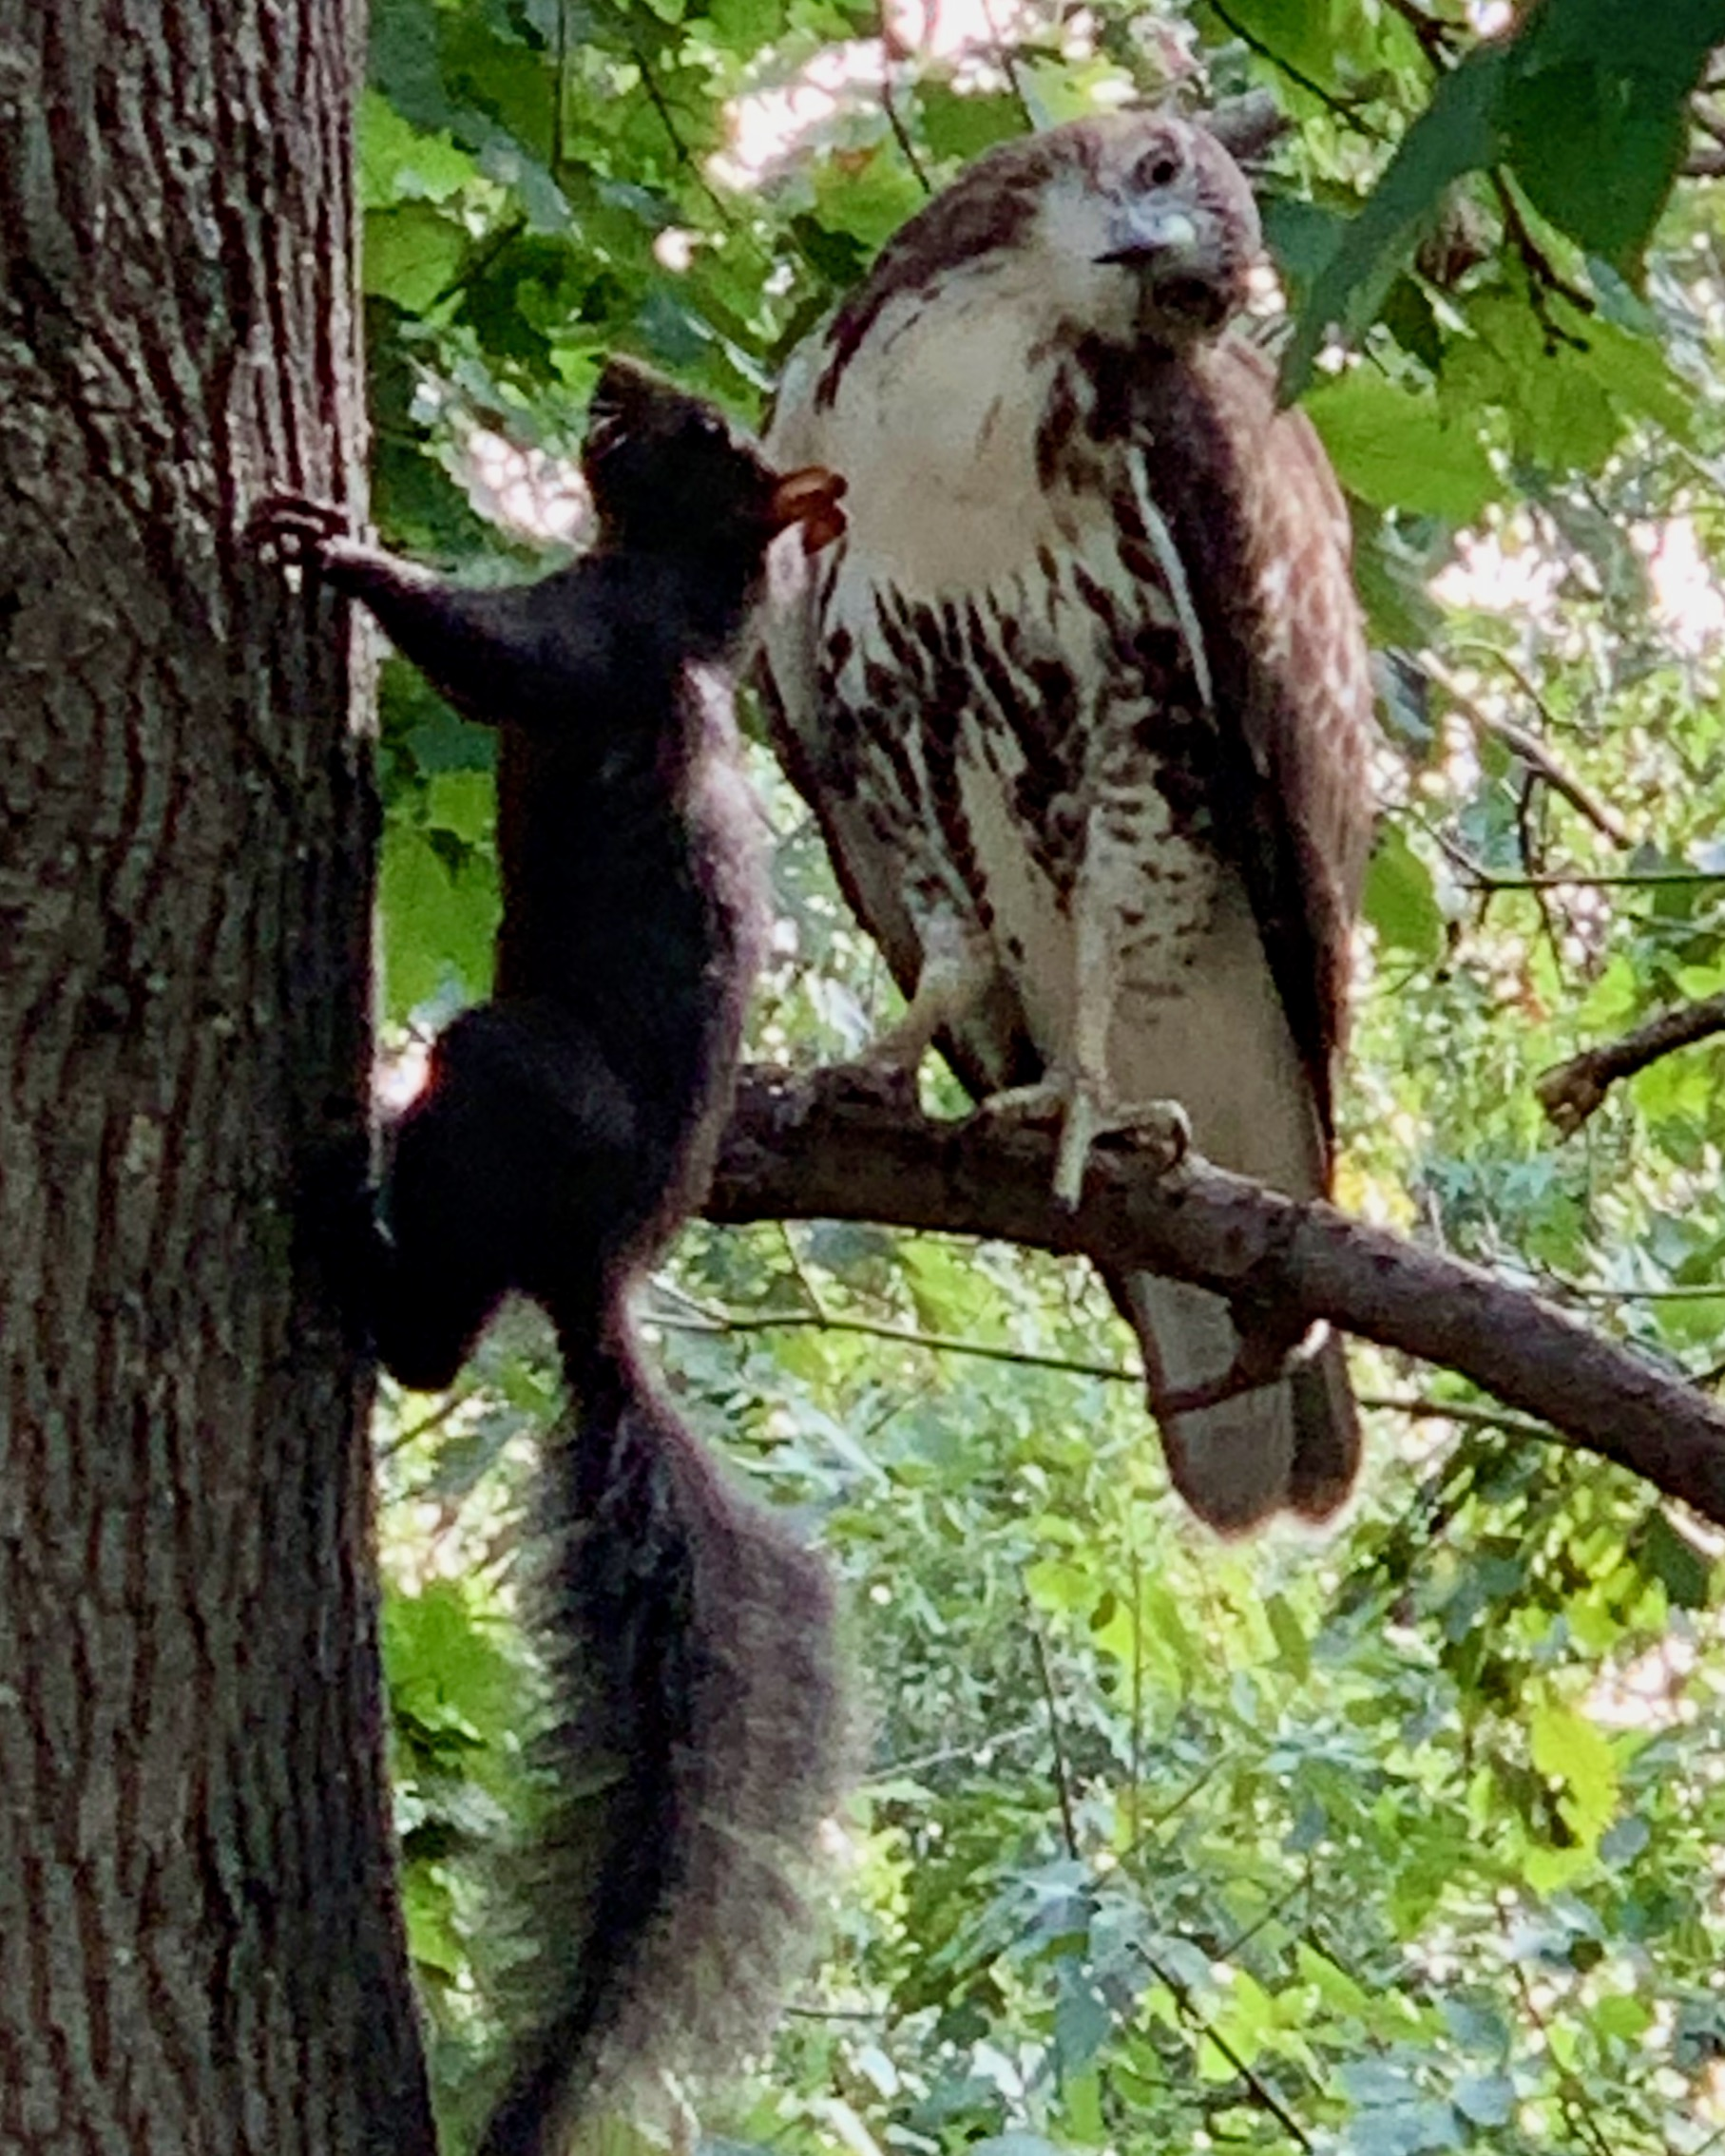 A red-tailed curiously eyes a black squirrel in New York City